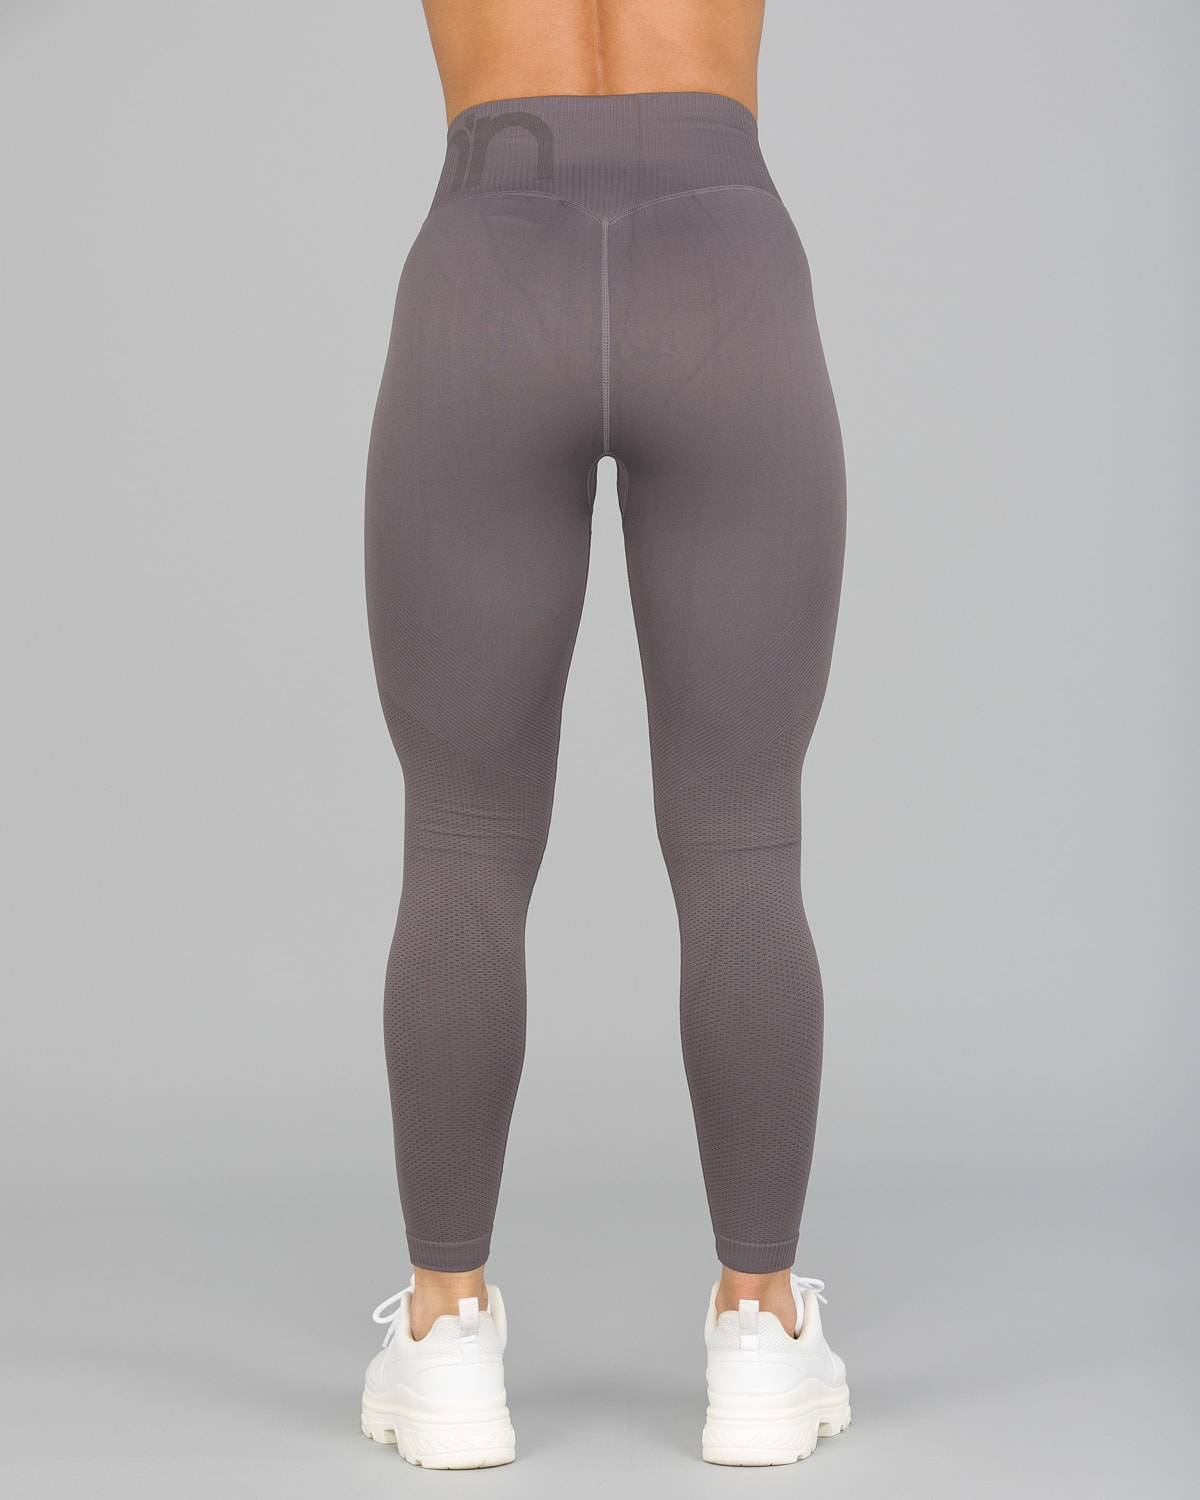 Aim'n Concrete Attention Seamless Tights9